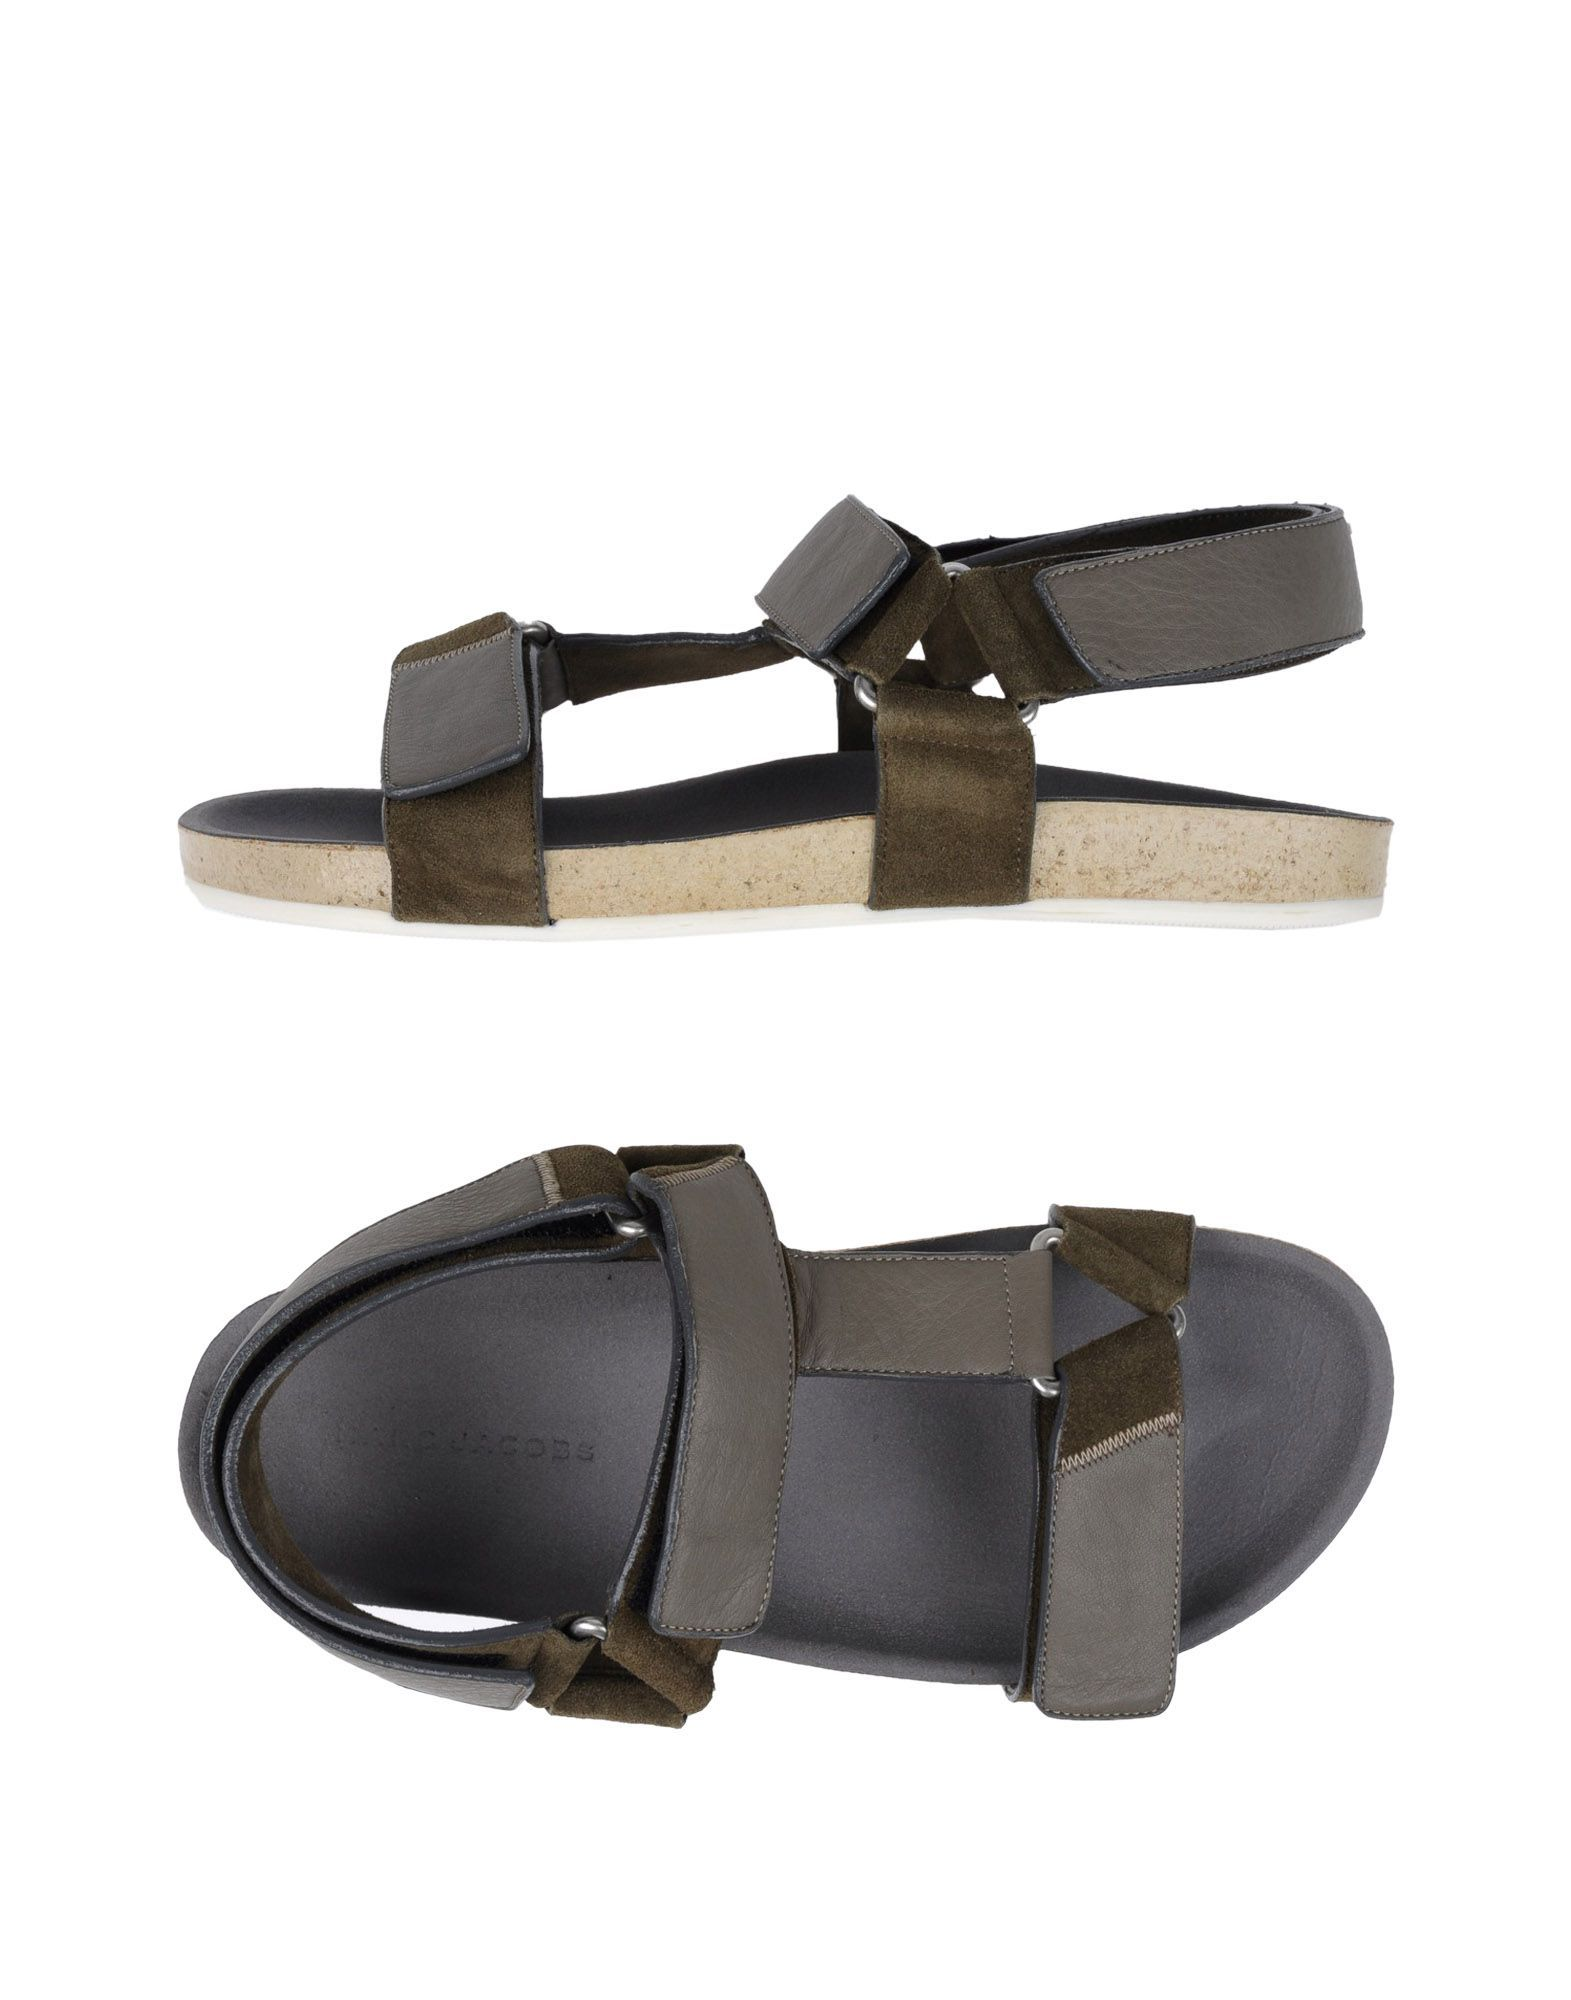 uk availability 92f38 18daa תוצאת תמונה עבור sandales marc jacobs | sandals in ...